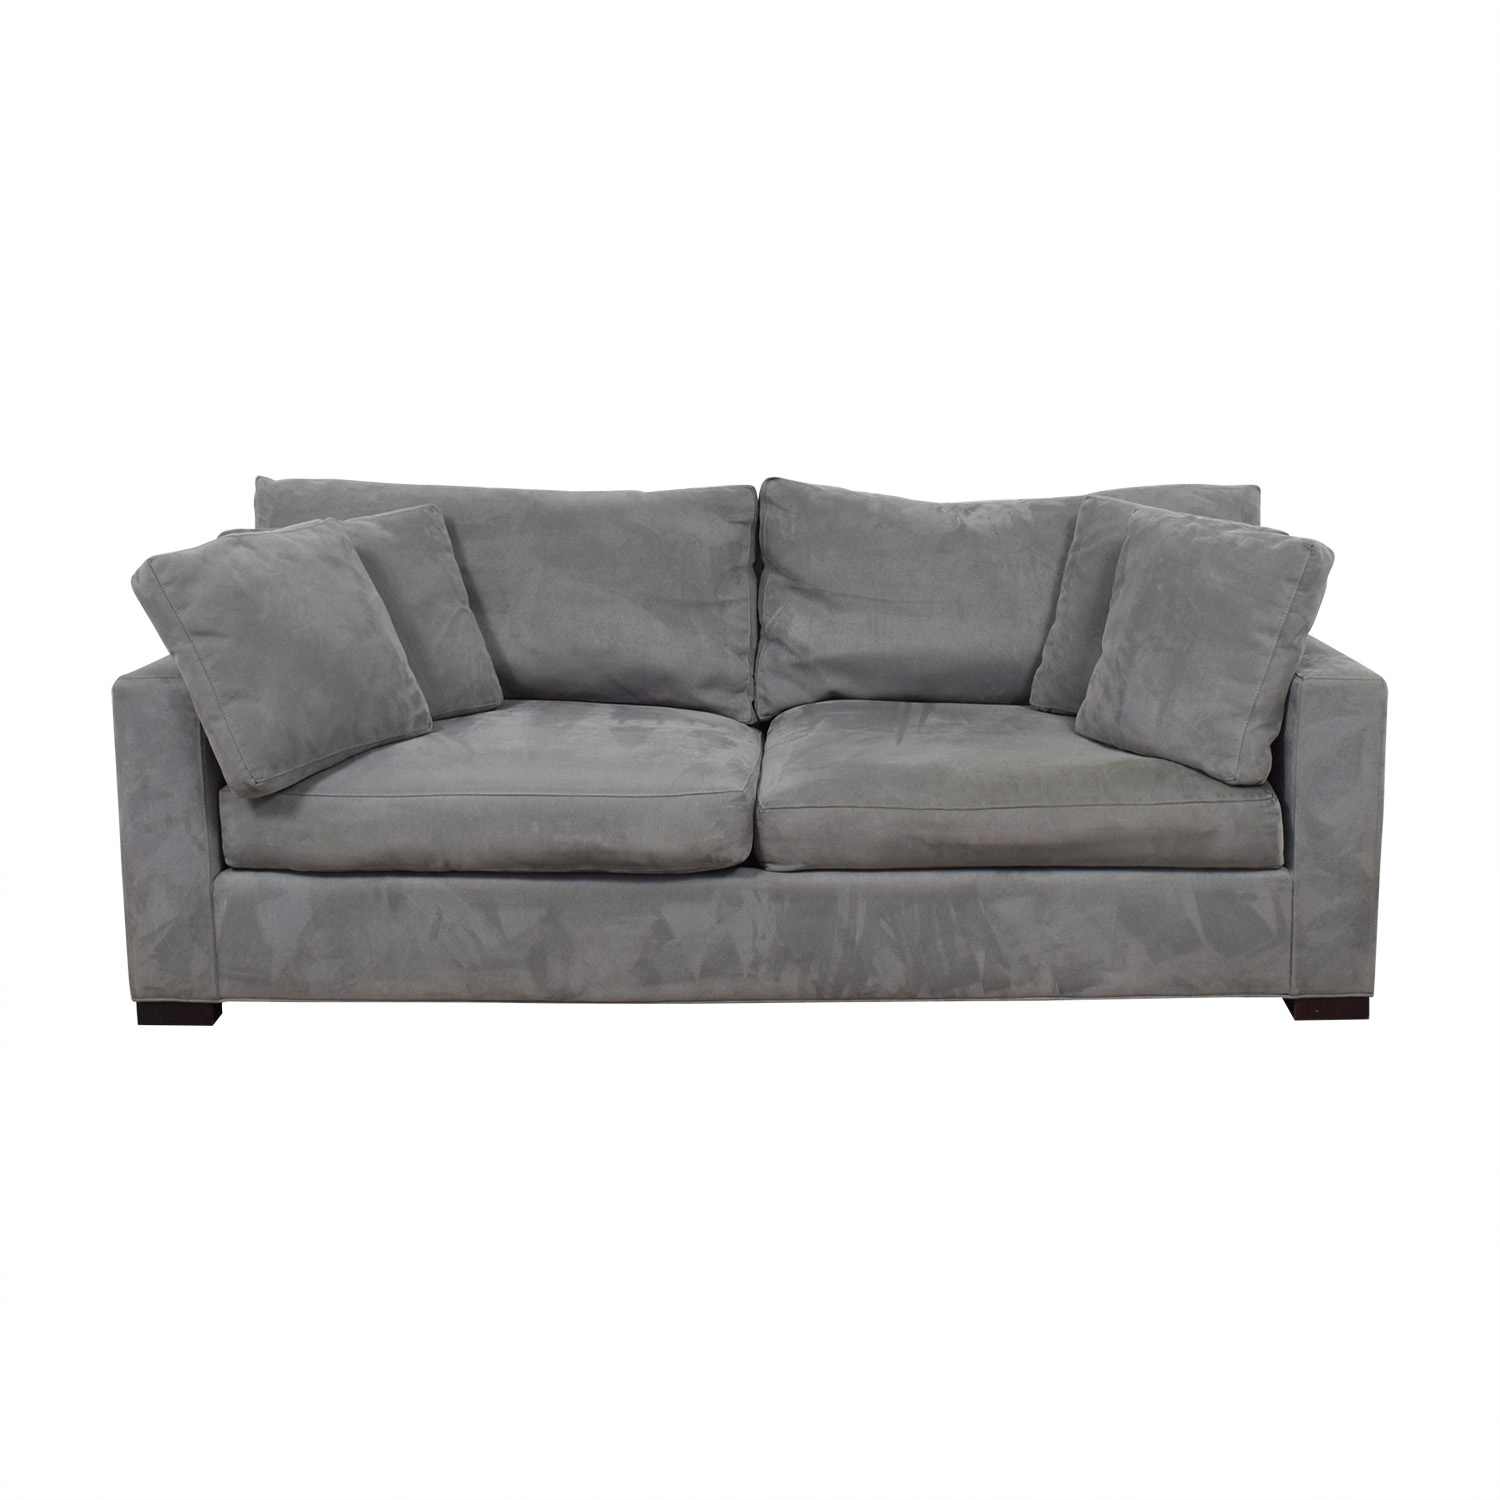 shop Crate & Barrel Gray Two-Cushion Couch Crate & Barrel